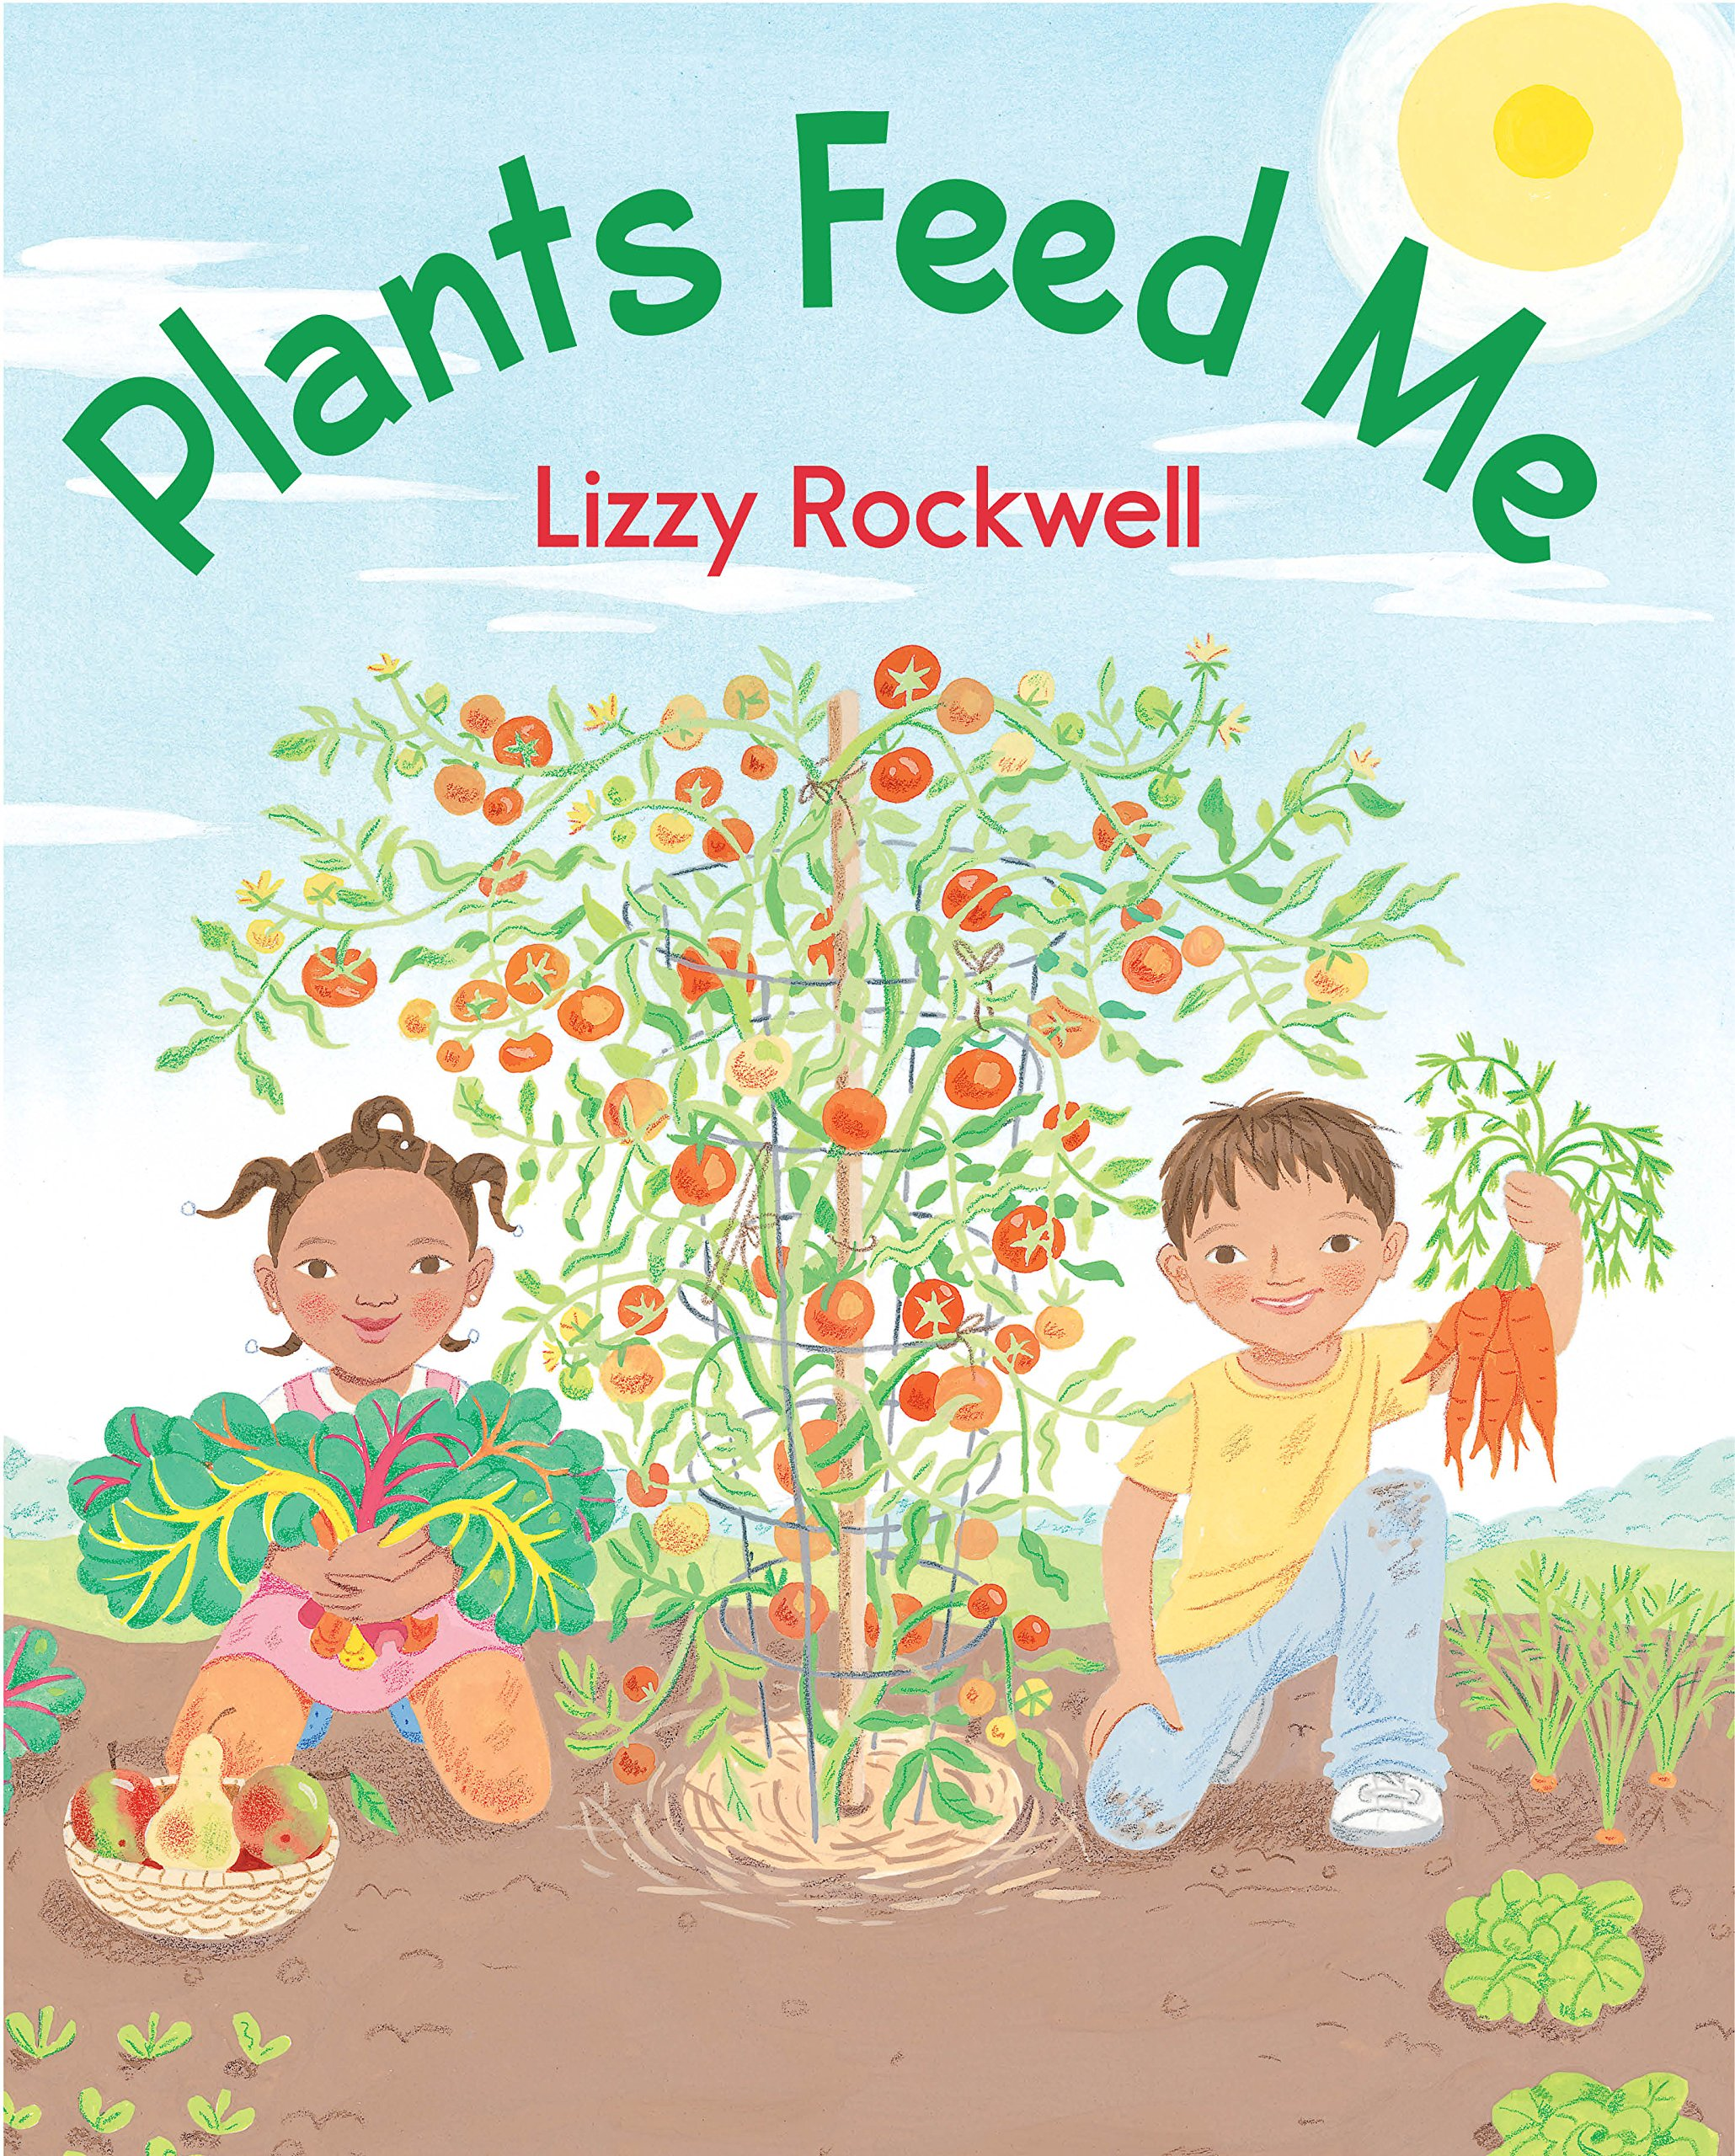 Plants Feed Me - Lizzy Rockwell